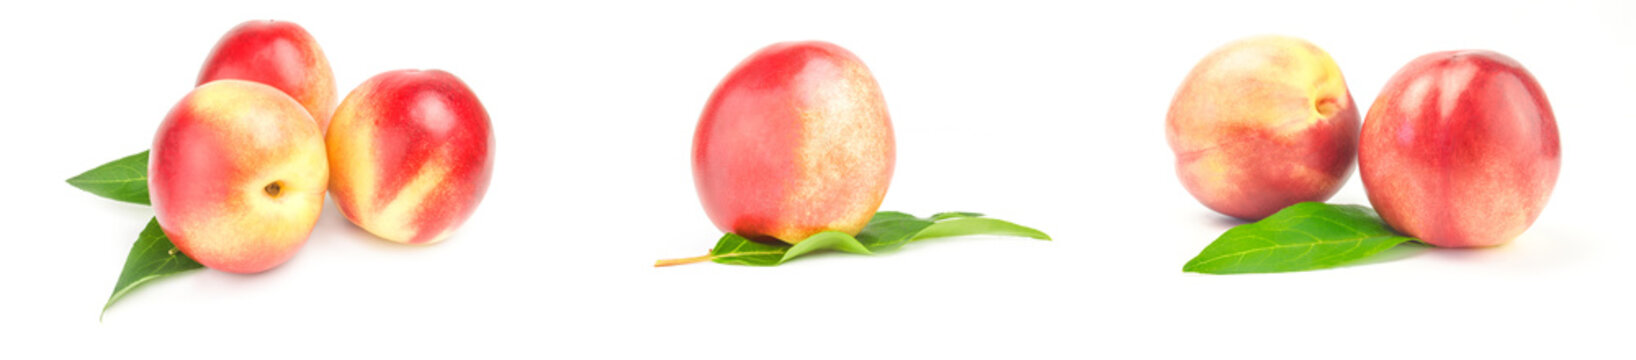 Set of fresh peaches fruits isolated on a white background cutout